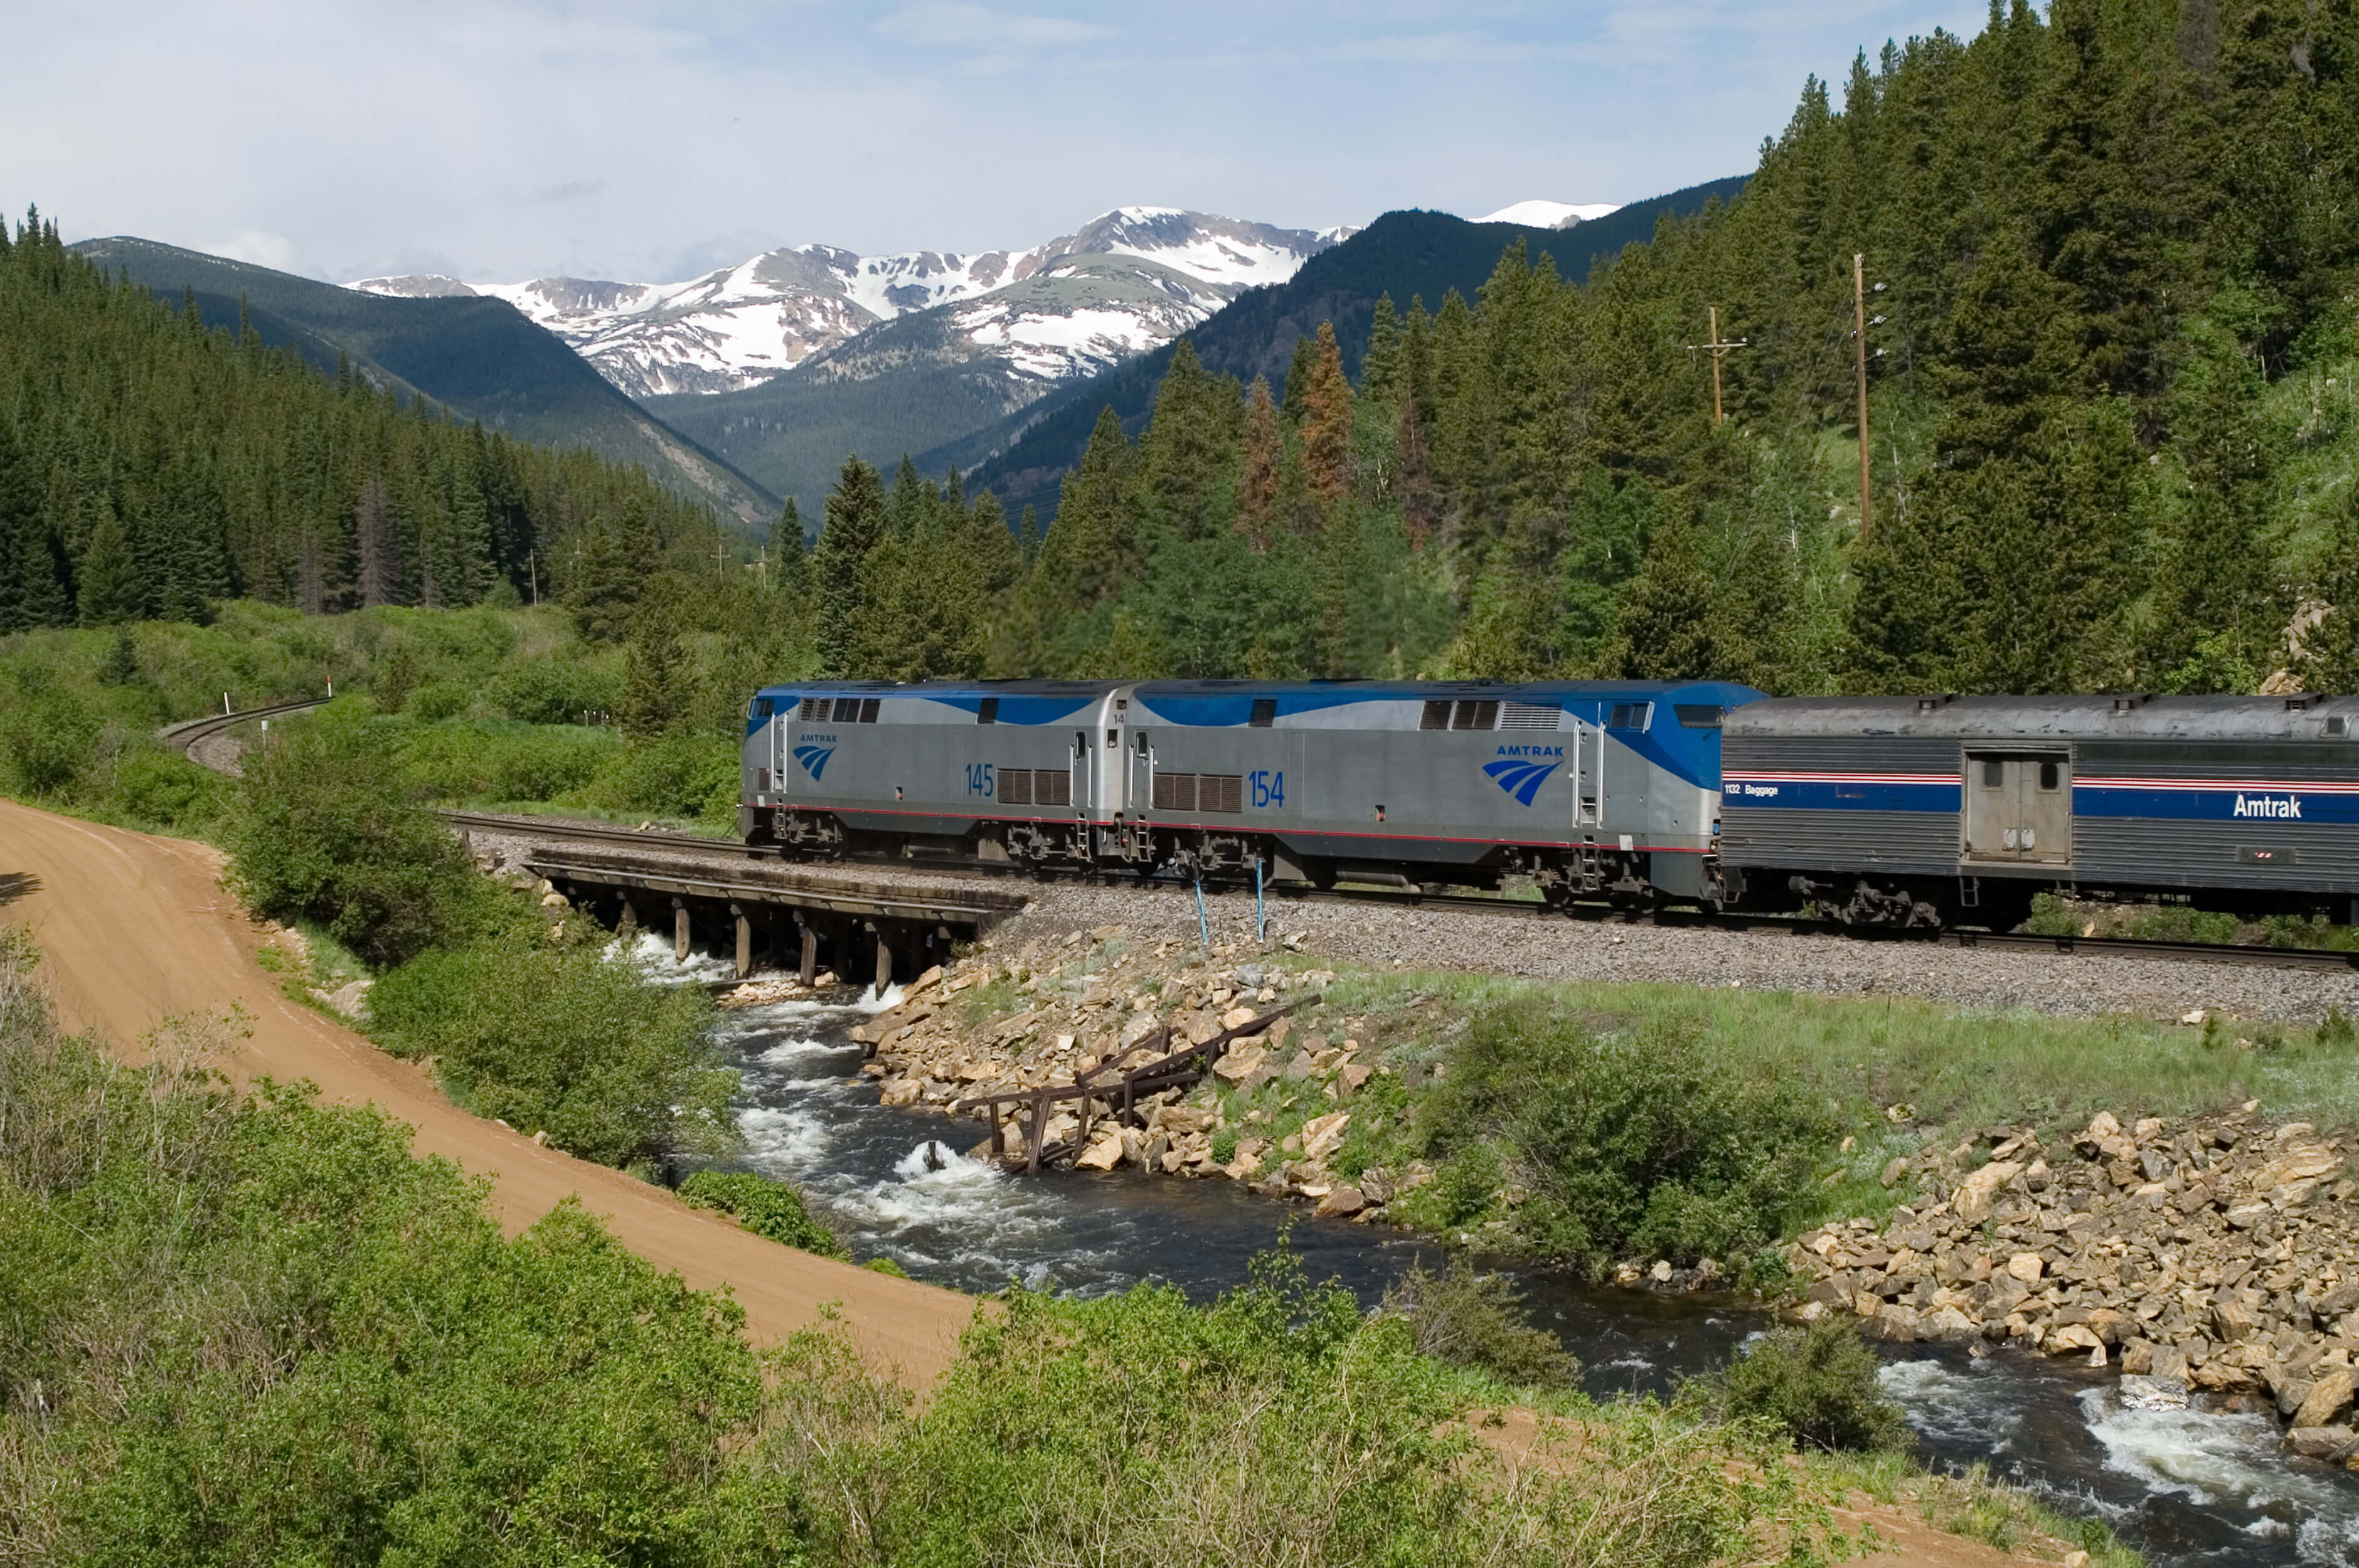 Amtrak's Empire Builder coming straight into Glacier National Park